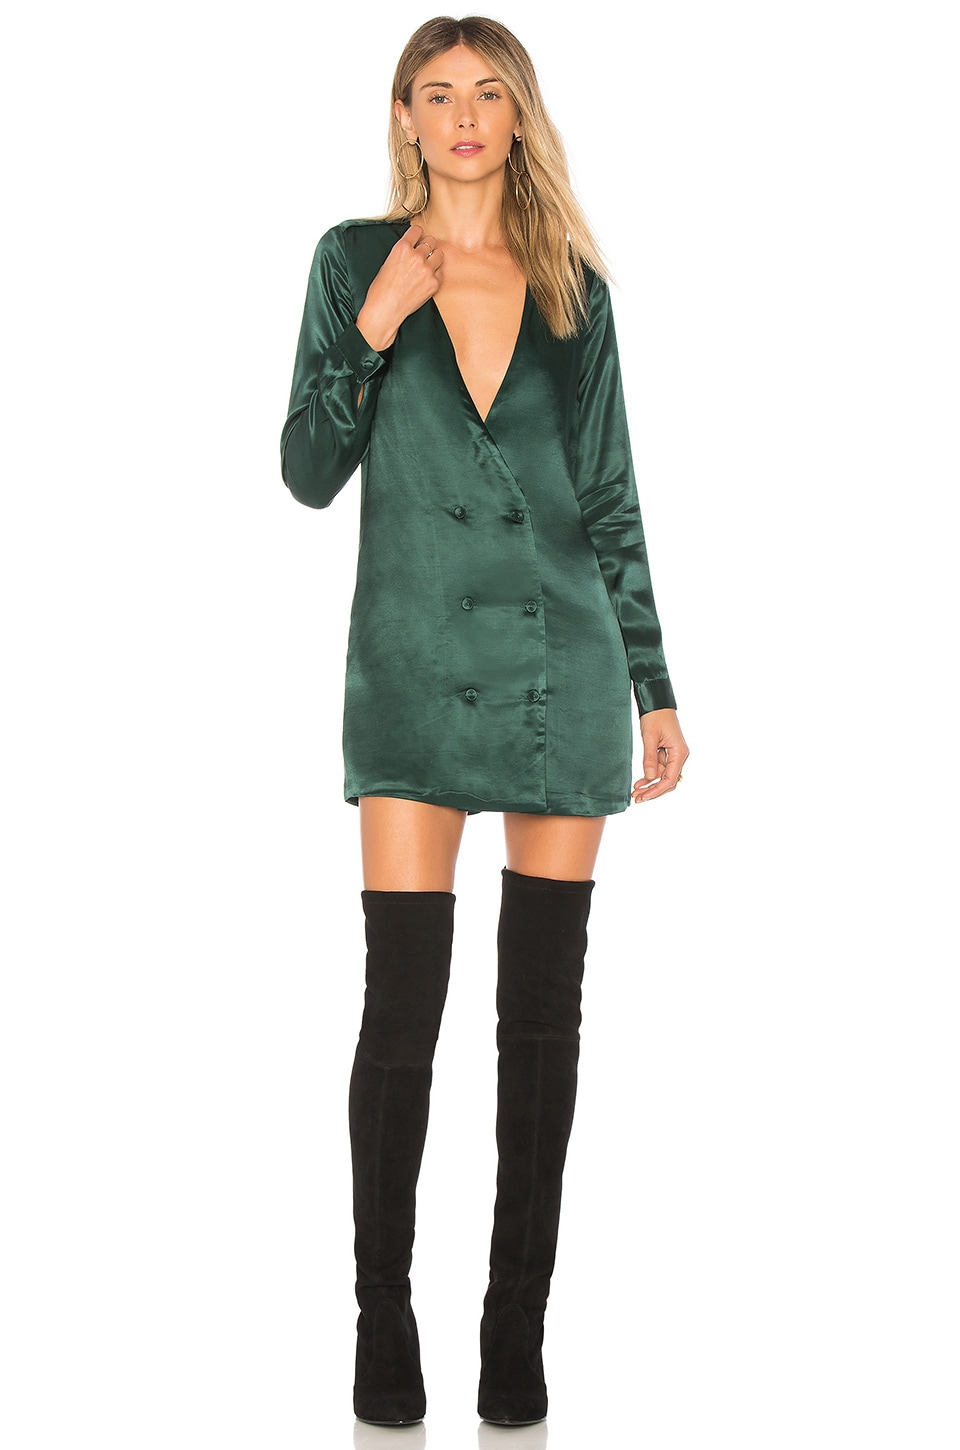 L'Academie The Cadet Dress in Emerald